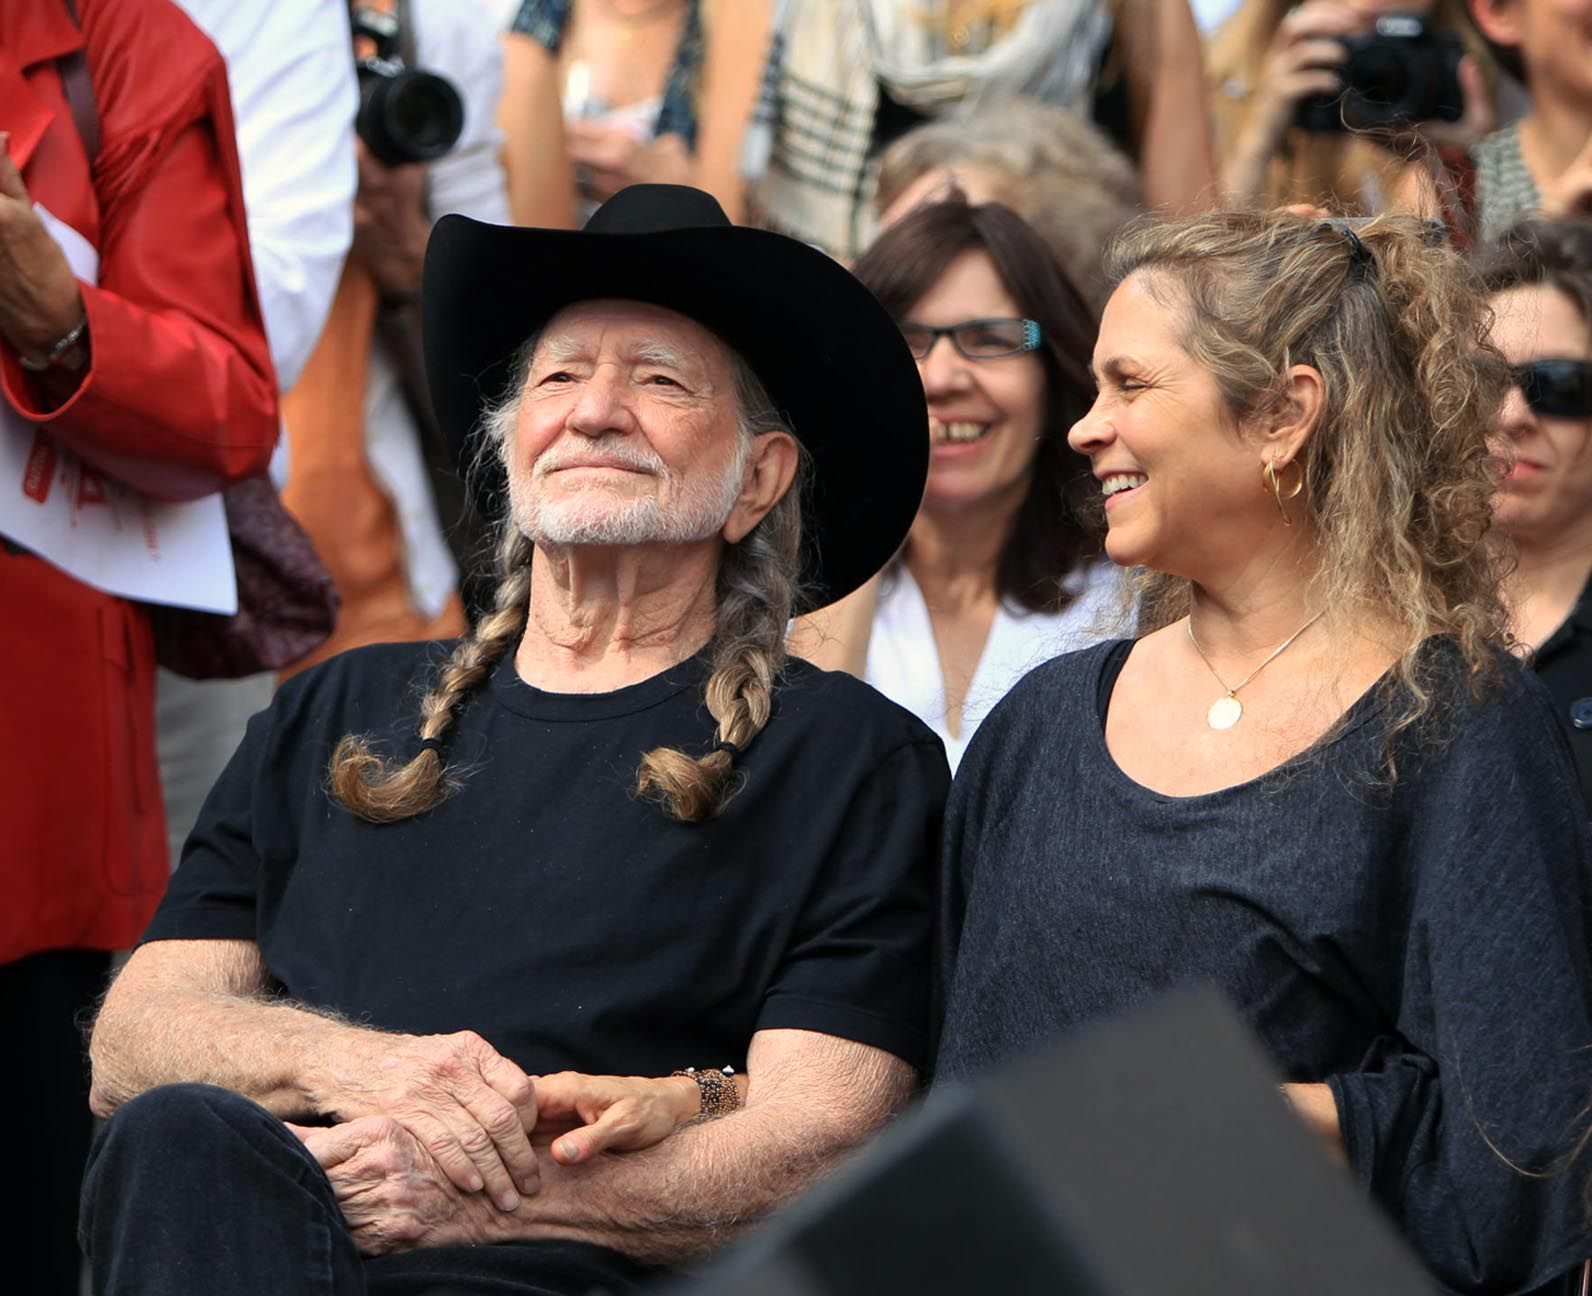 Report: Willie Nelson's wife to join the marijuana industry